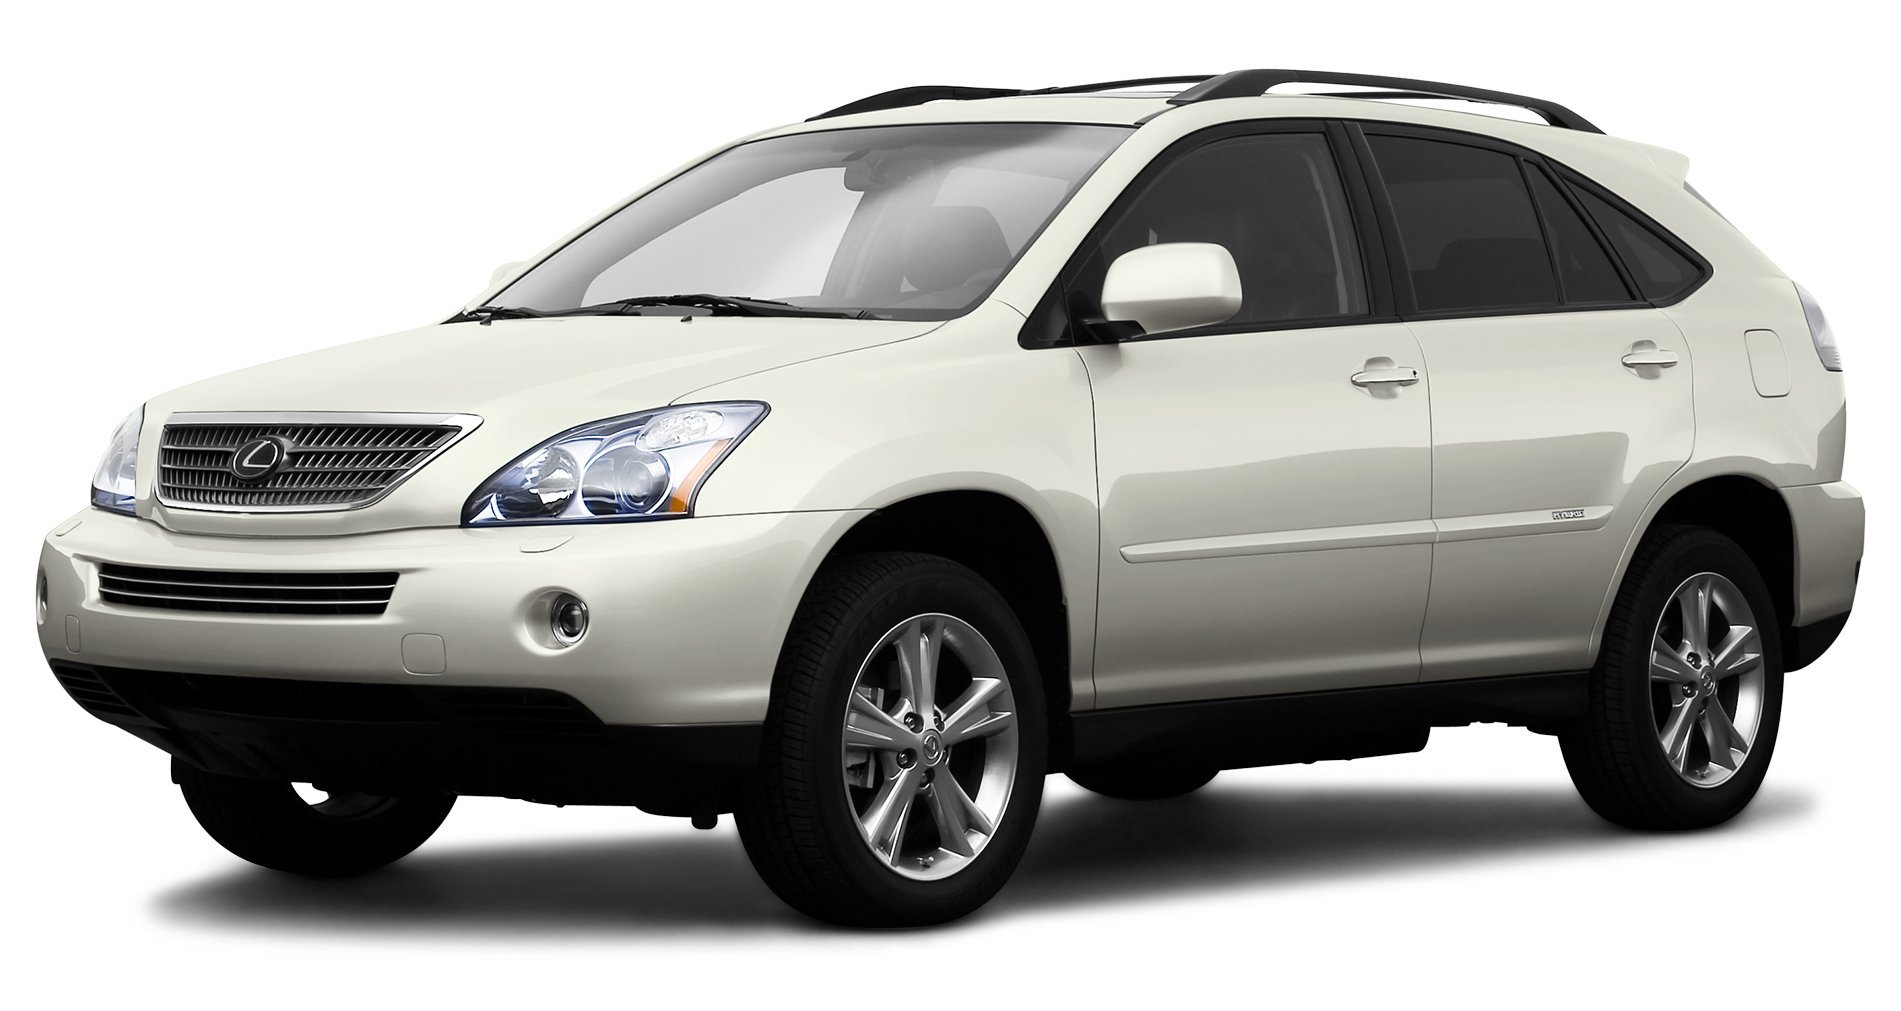 2008 lexus rx400h reviews images and specs. Black Bedroom Furniture Sets. Home Design Ideas